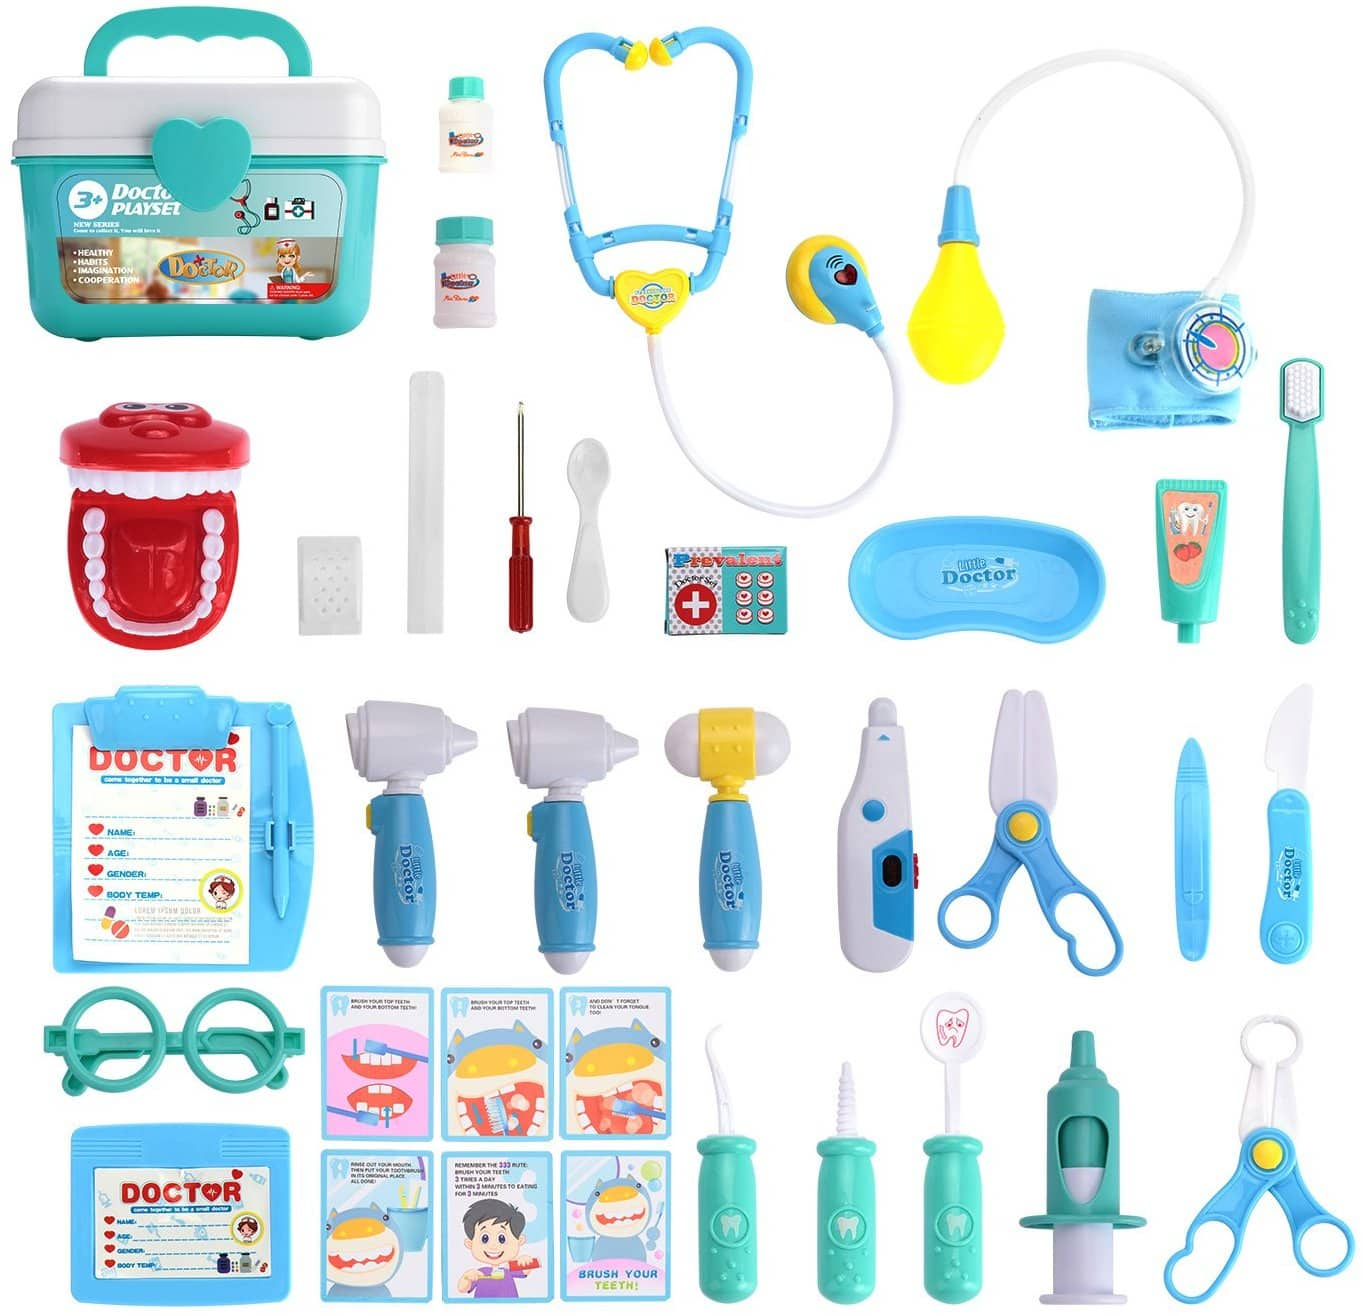 31 Piece Pretend-n-Play Dentist Medical Kit with Electronic Stethoscope and Coat for Kids- $14.29 FS w/Prime